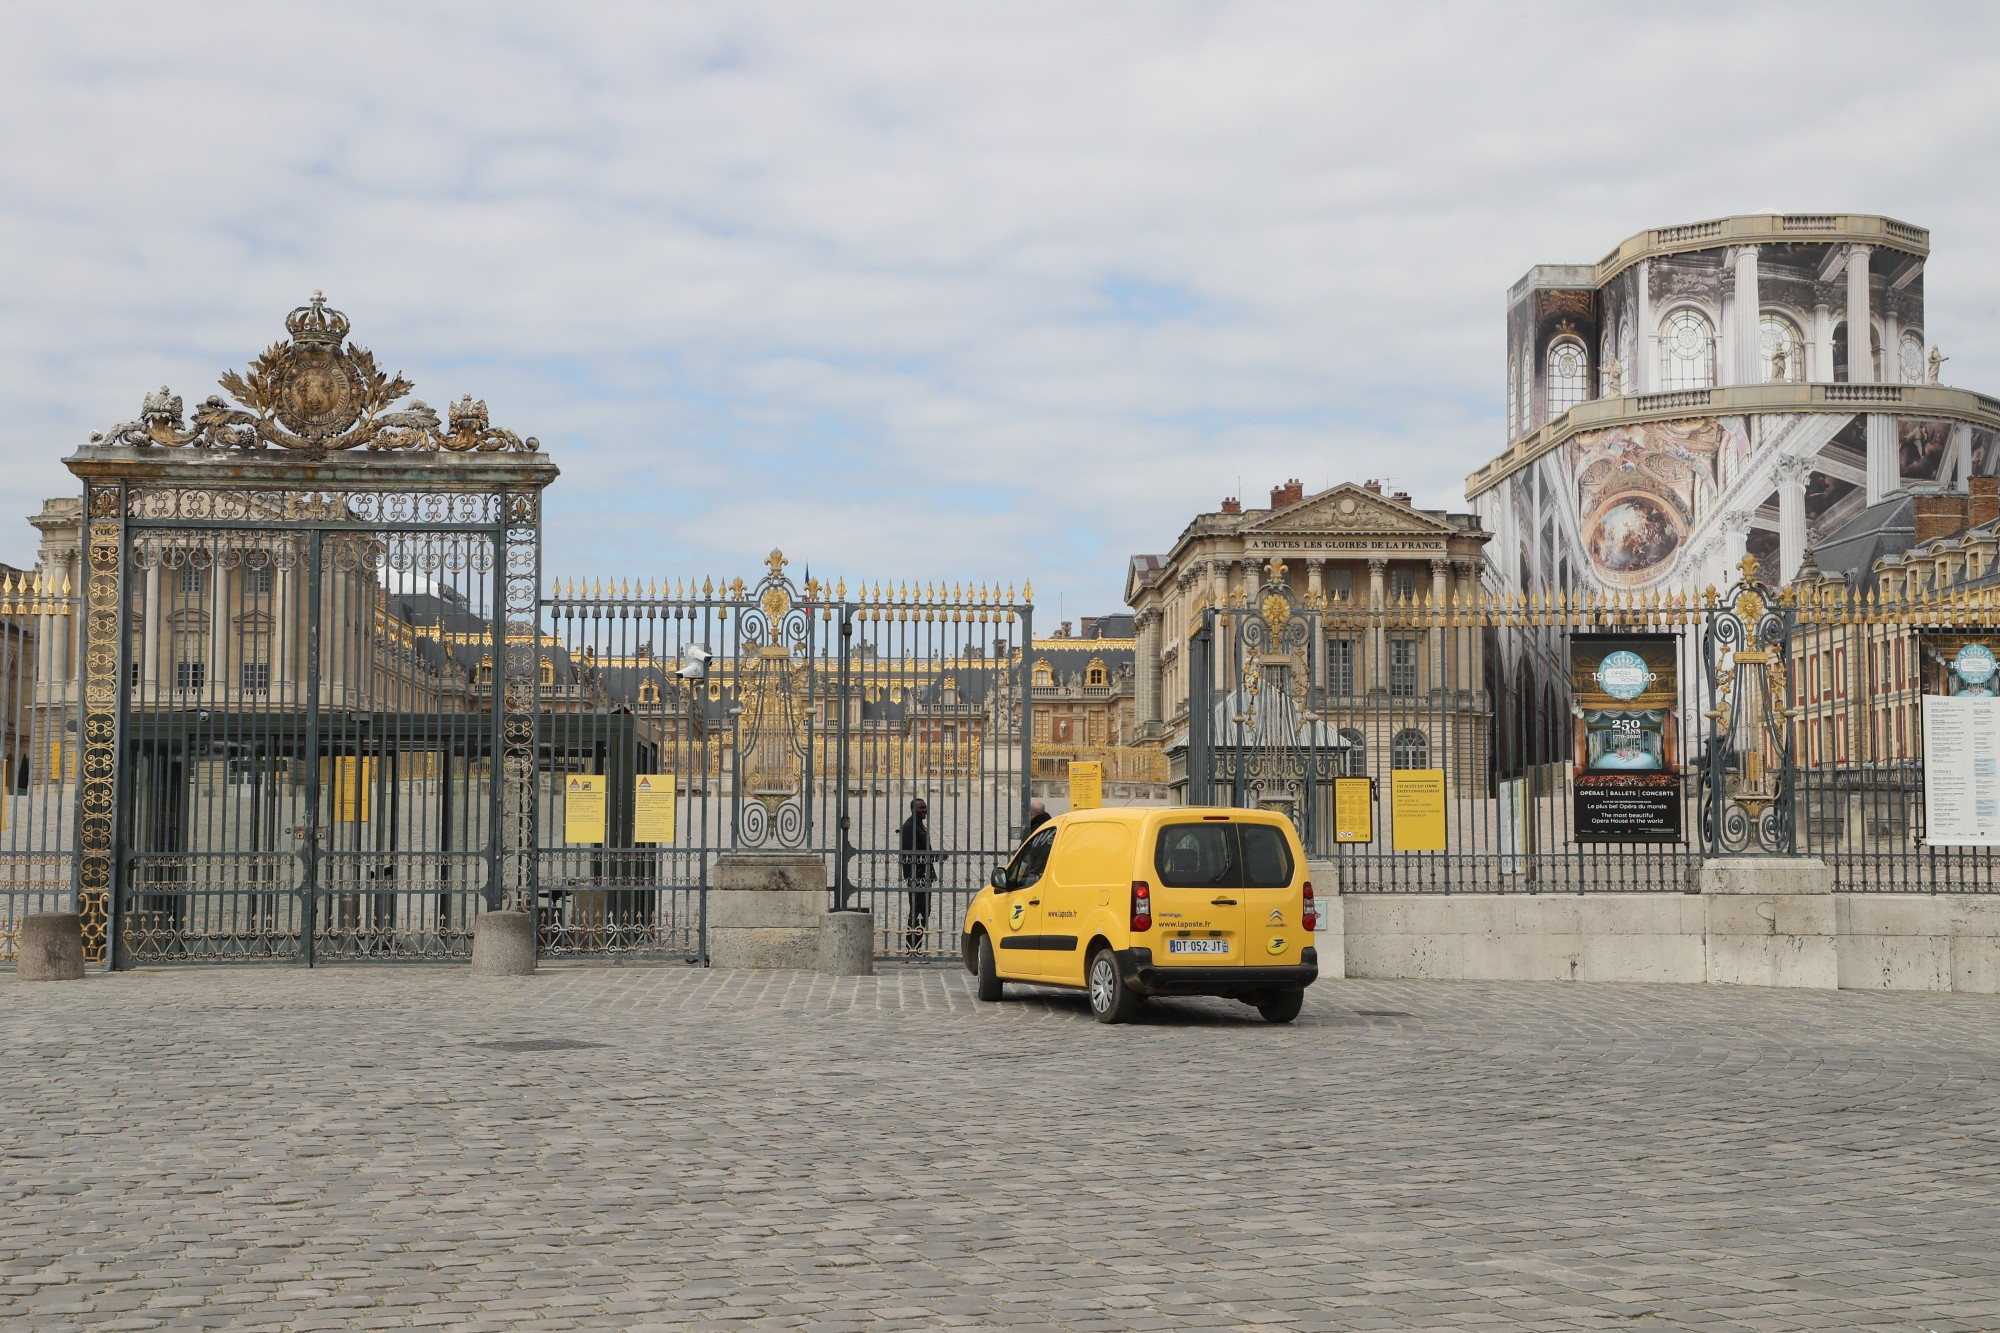 """Palace of Versailles : """"We have lost around 45 million euros"""", says Catherine Pégard on RTL"""